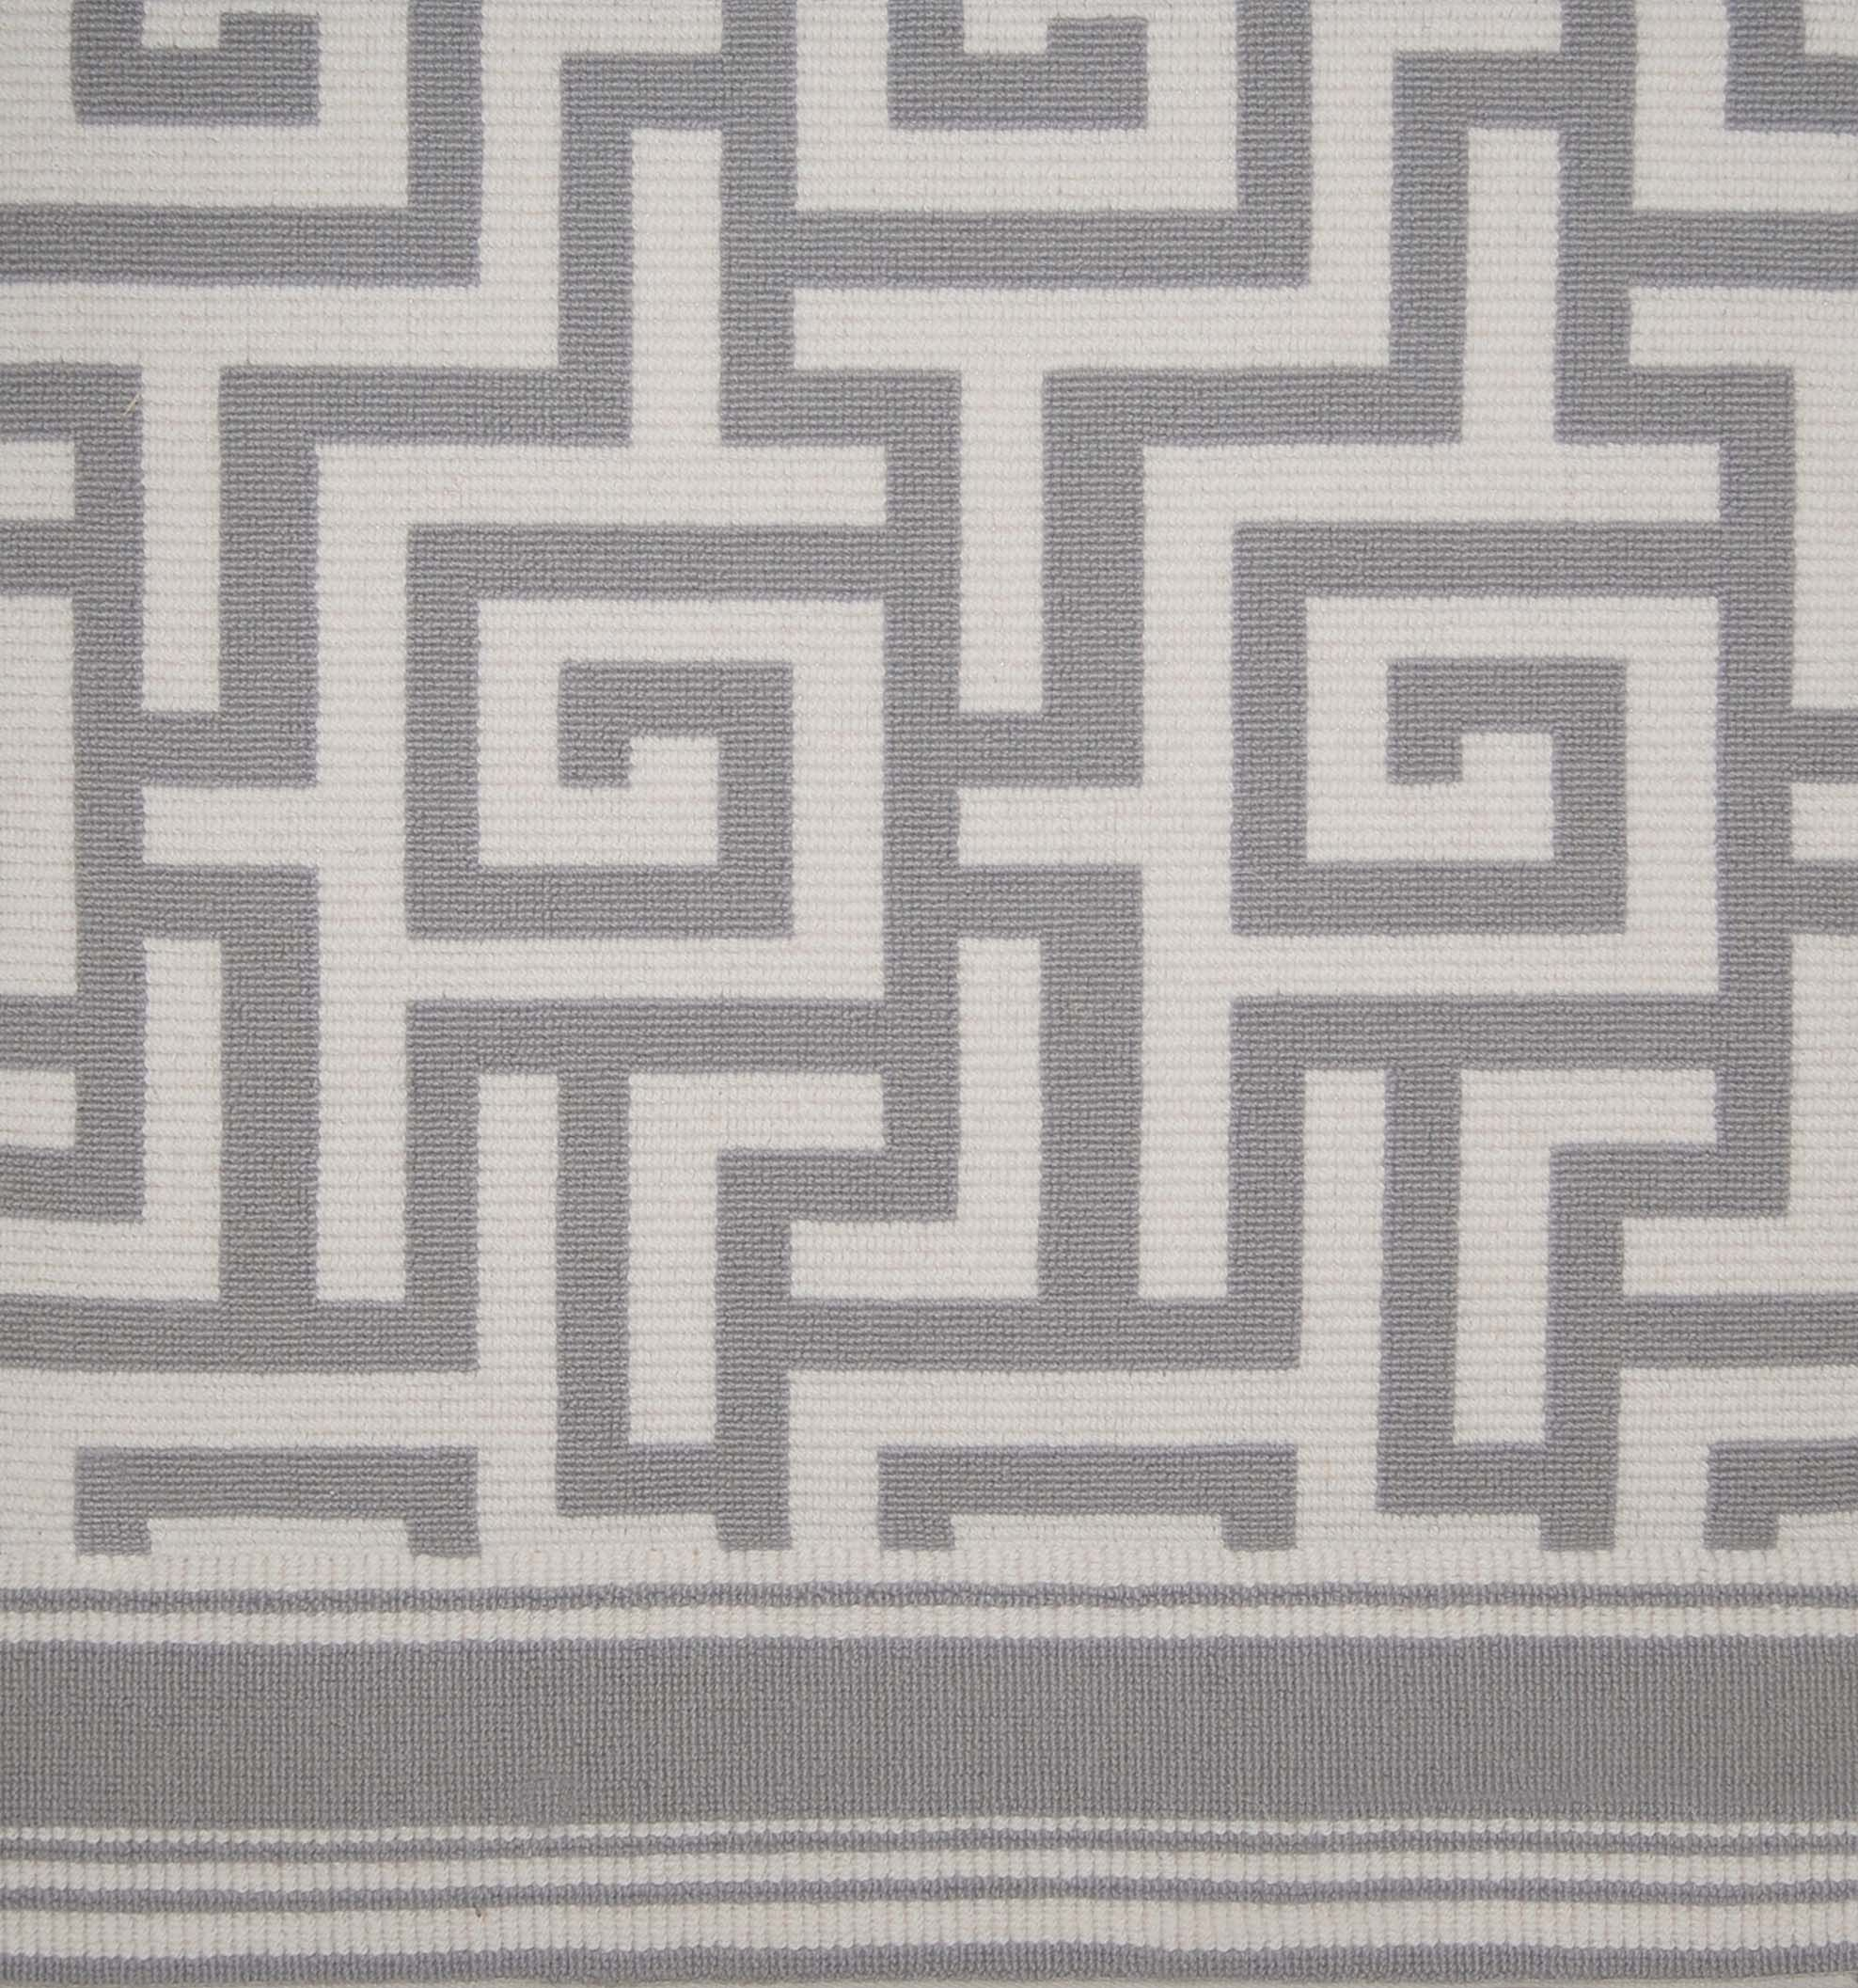 Stark Carpet Meandering Pattern Reminiscent Of Geometric Period Mycenae